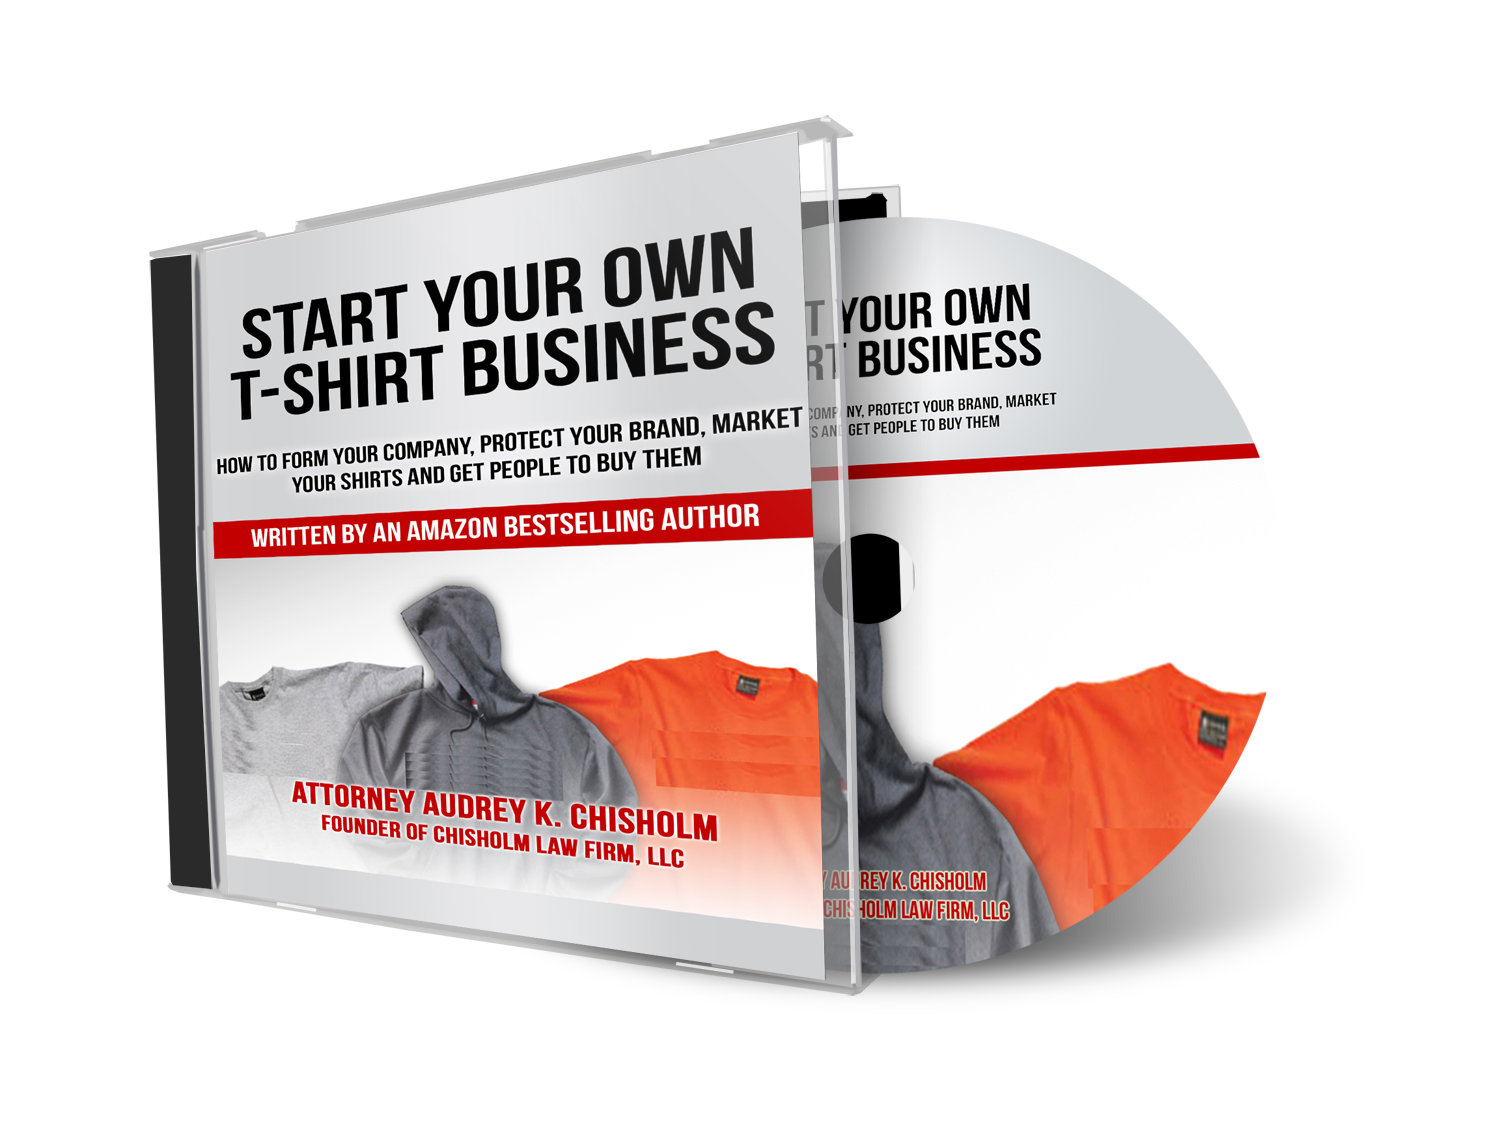 Design your own t-shirt business - Cd Png Cd2 Png Quick View Start Your Own T Shirt Business